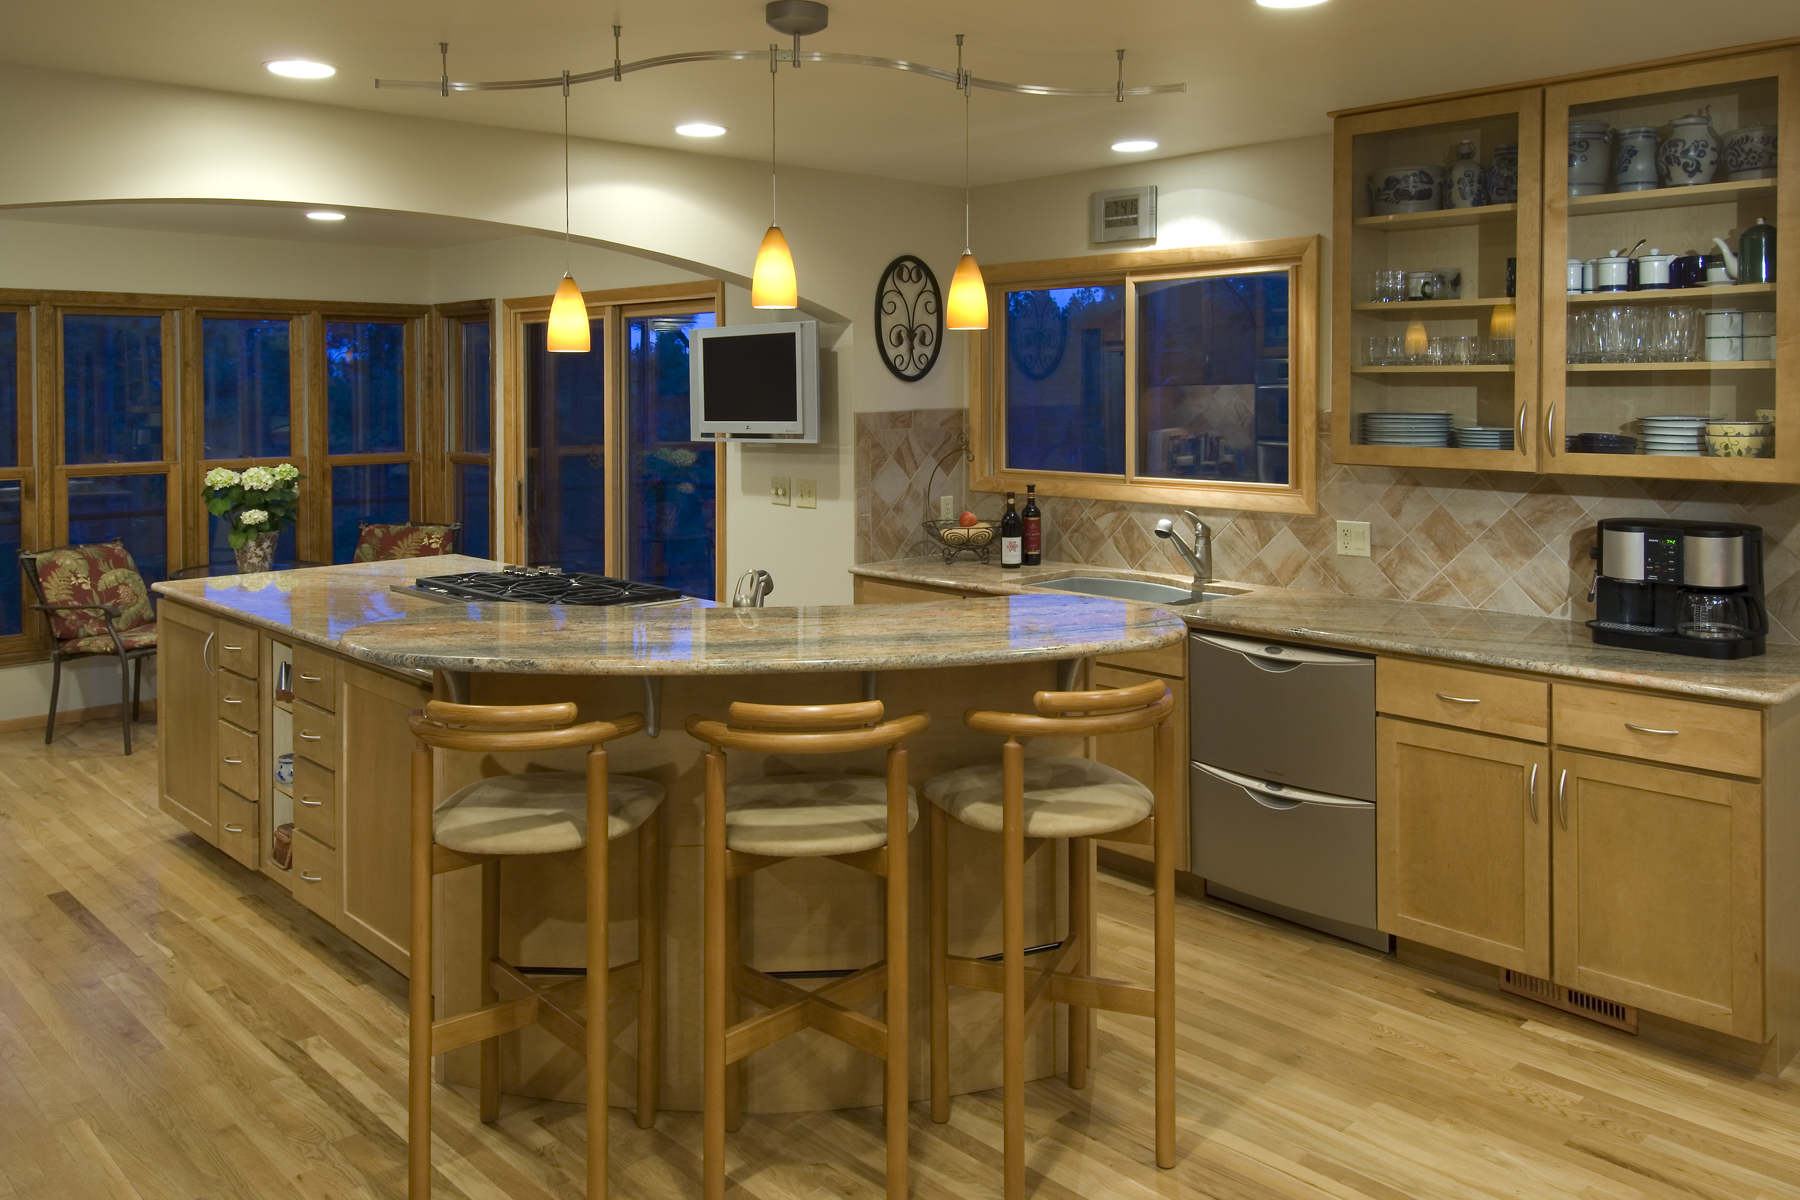 kitchen remodeling colorado springs : kitchen design colorado springs - hauntedcathouse.org